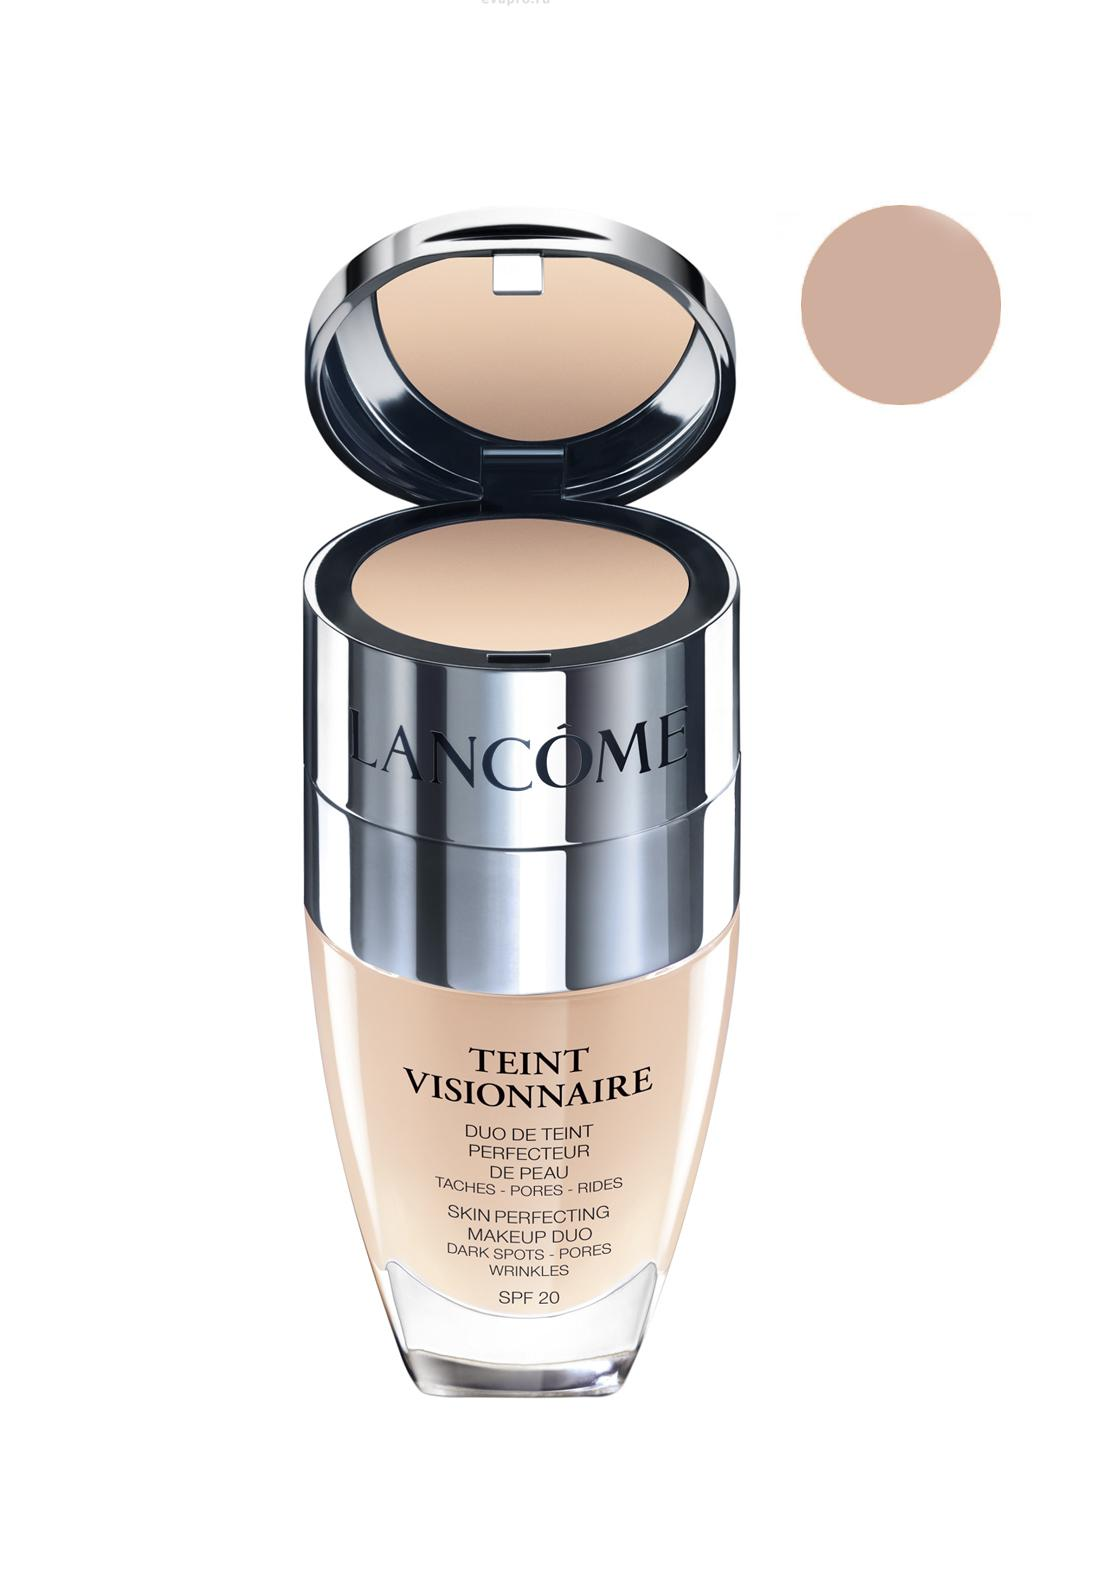 Lancome Teint Visionnaire Skin Perfecting Makeup Duo, 007 Beige Rose